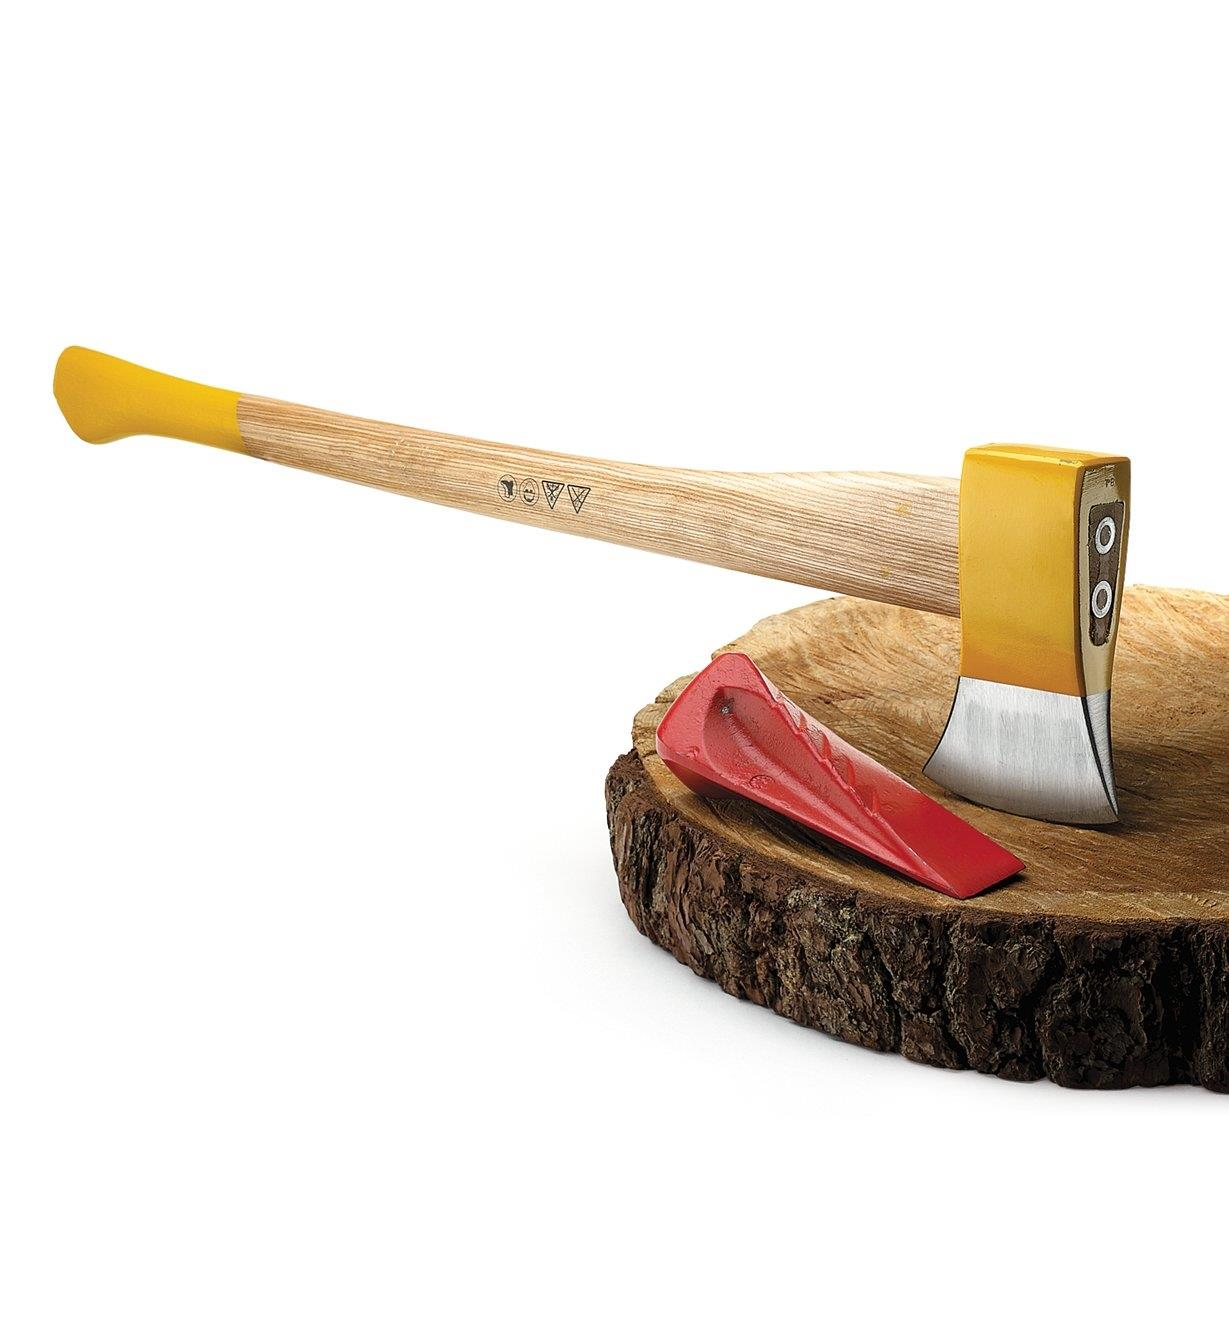 65U1001 - Oxhead Splitting Axe - 31""